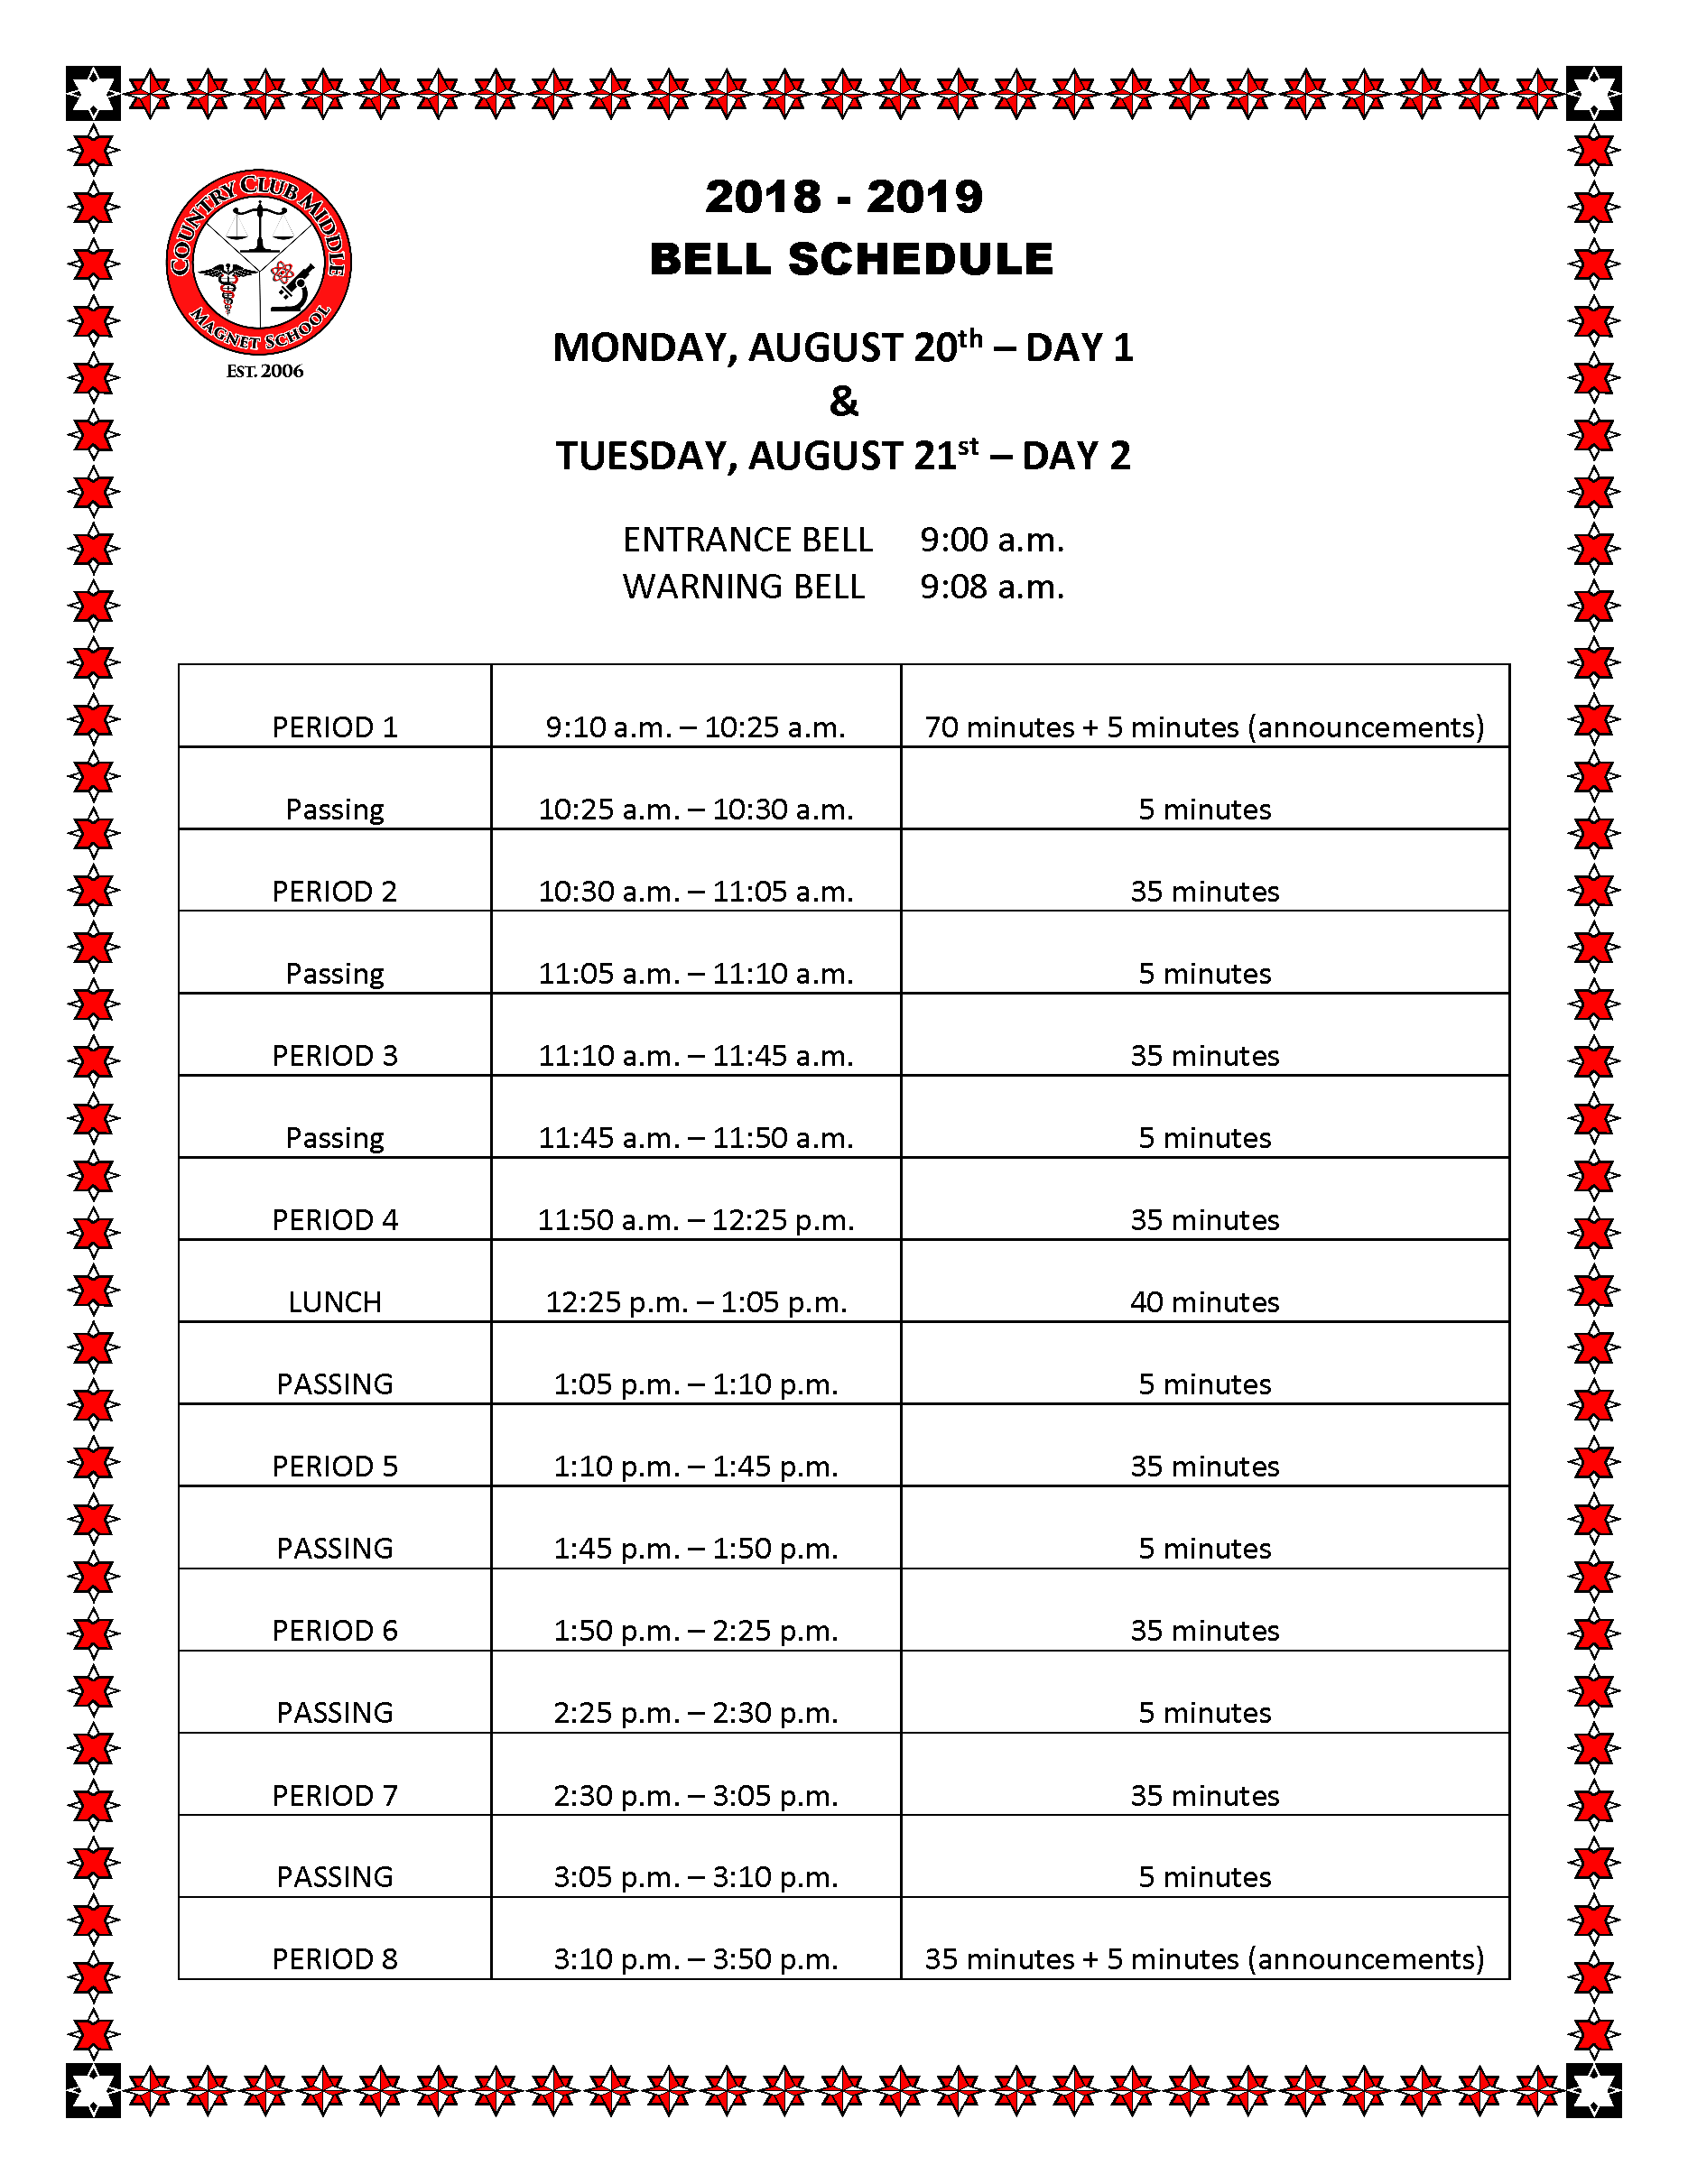 BELL SCHEDULE DAY 1 - 2 Country Club MS 2018-2019